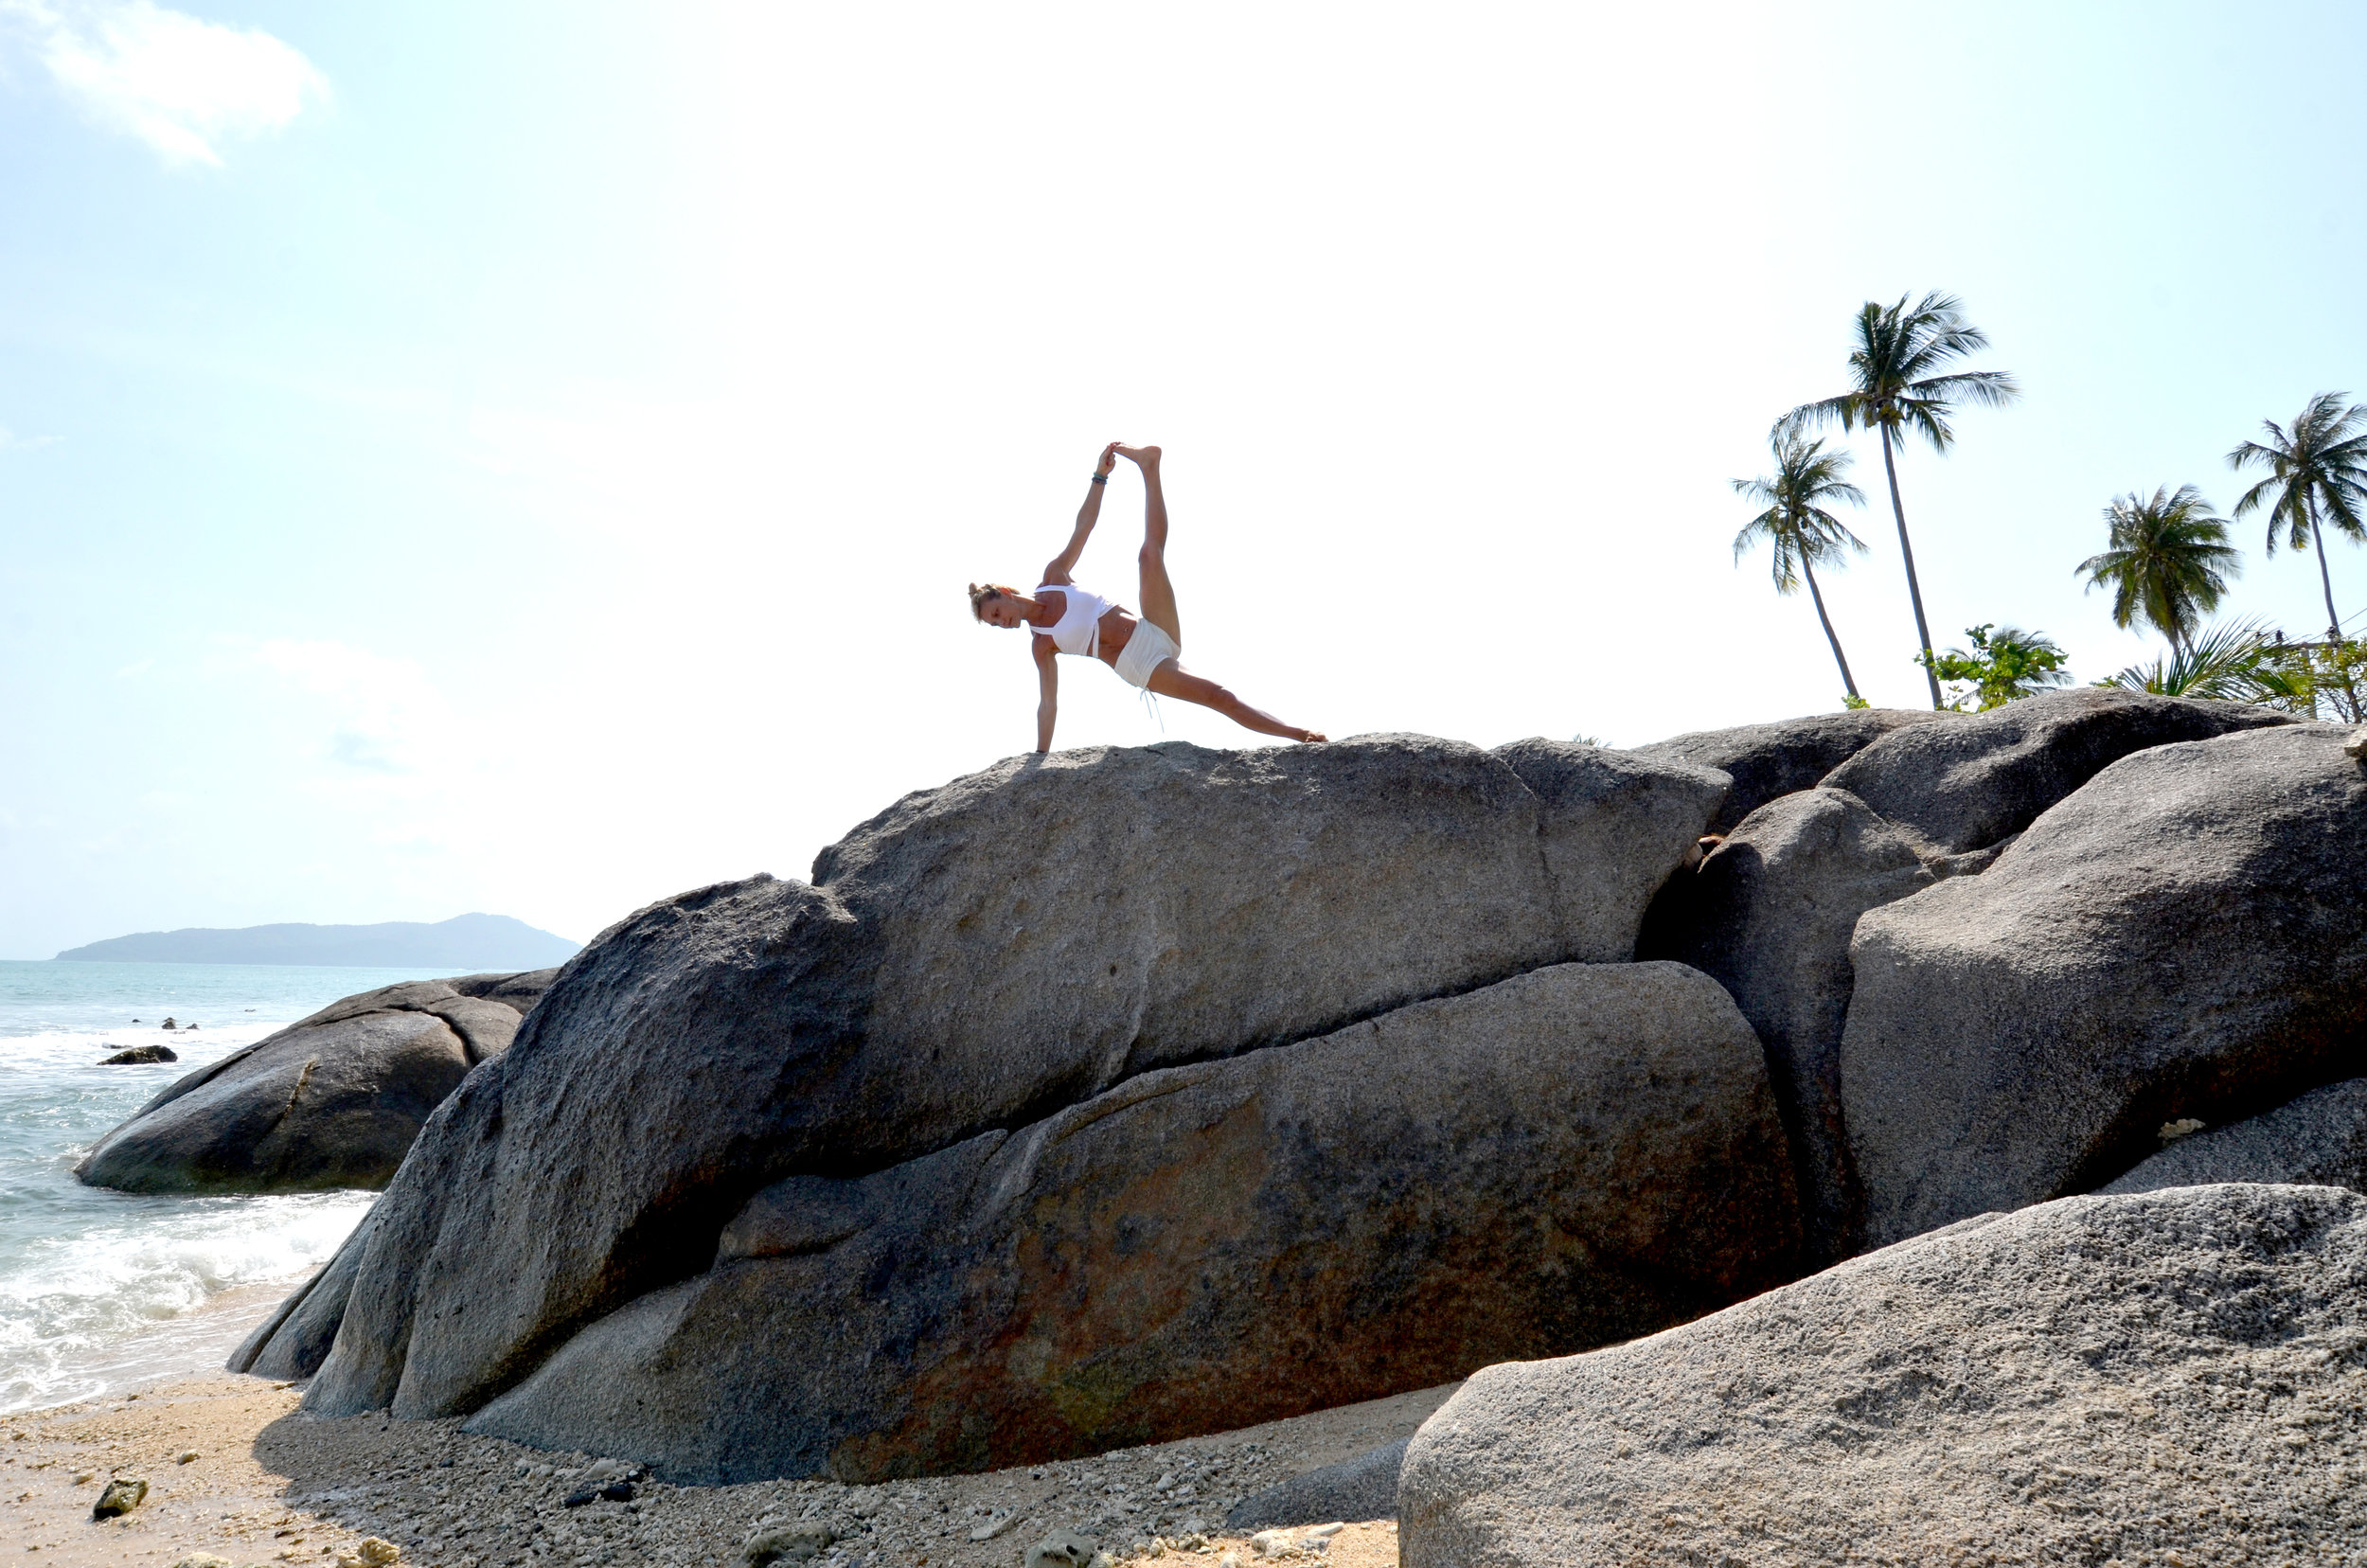 Stability, power and grace on the rocks. Love it. Another beautiful day shooting on the beach, with Vicky from Israel.